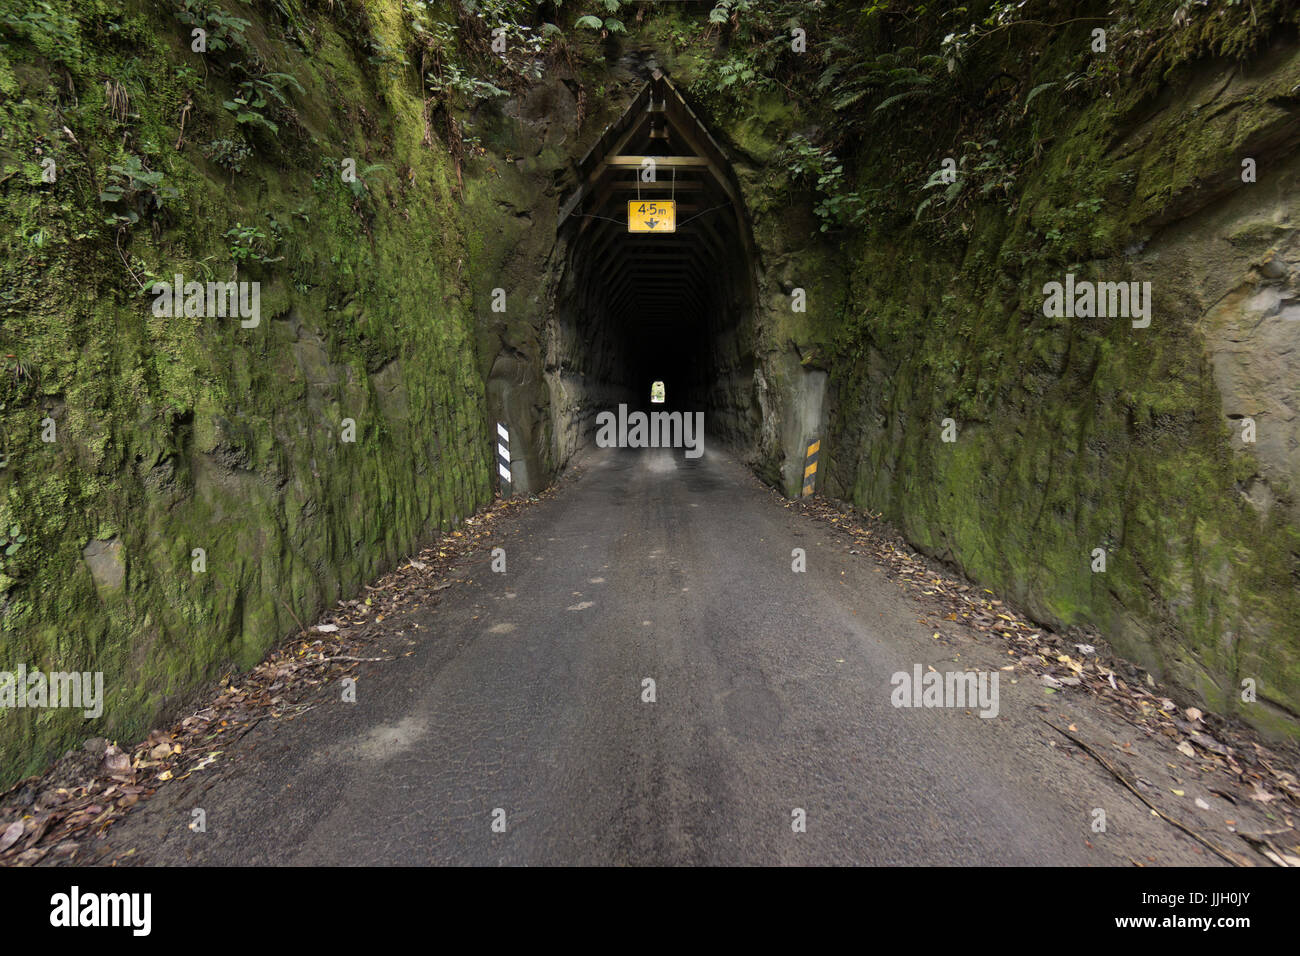 Moki Tunnel, Forgotten World Highway, Whangamomona, New Zealand - Stock Image